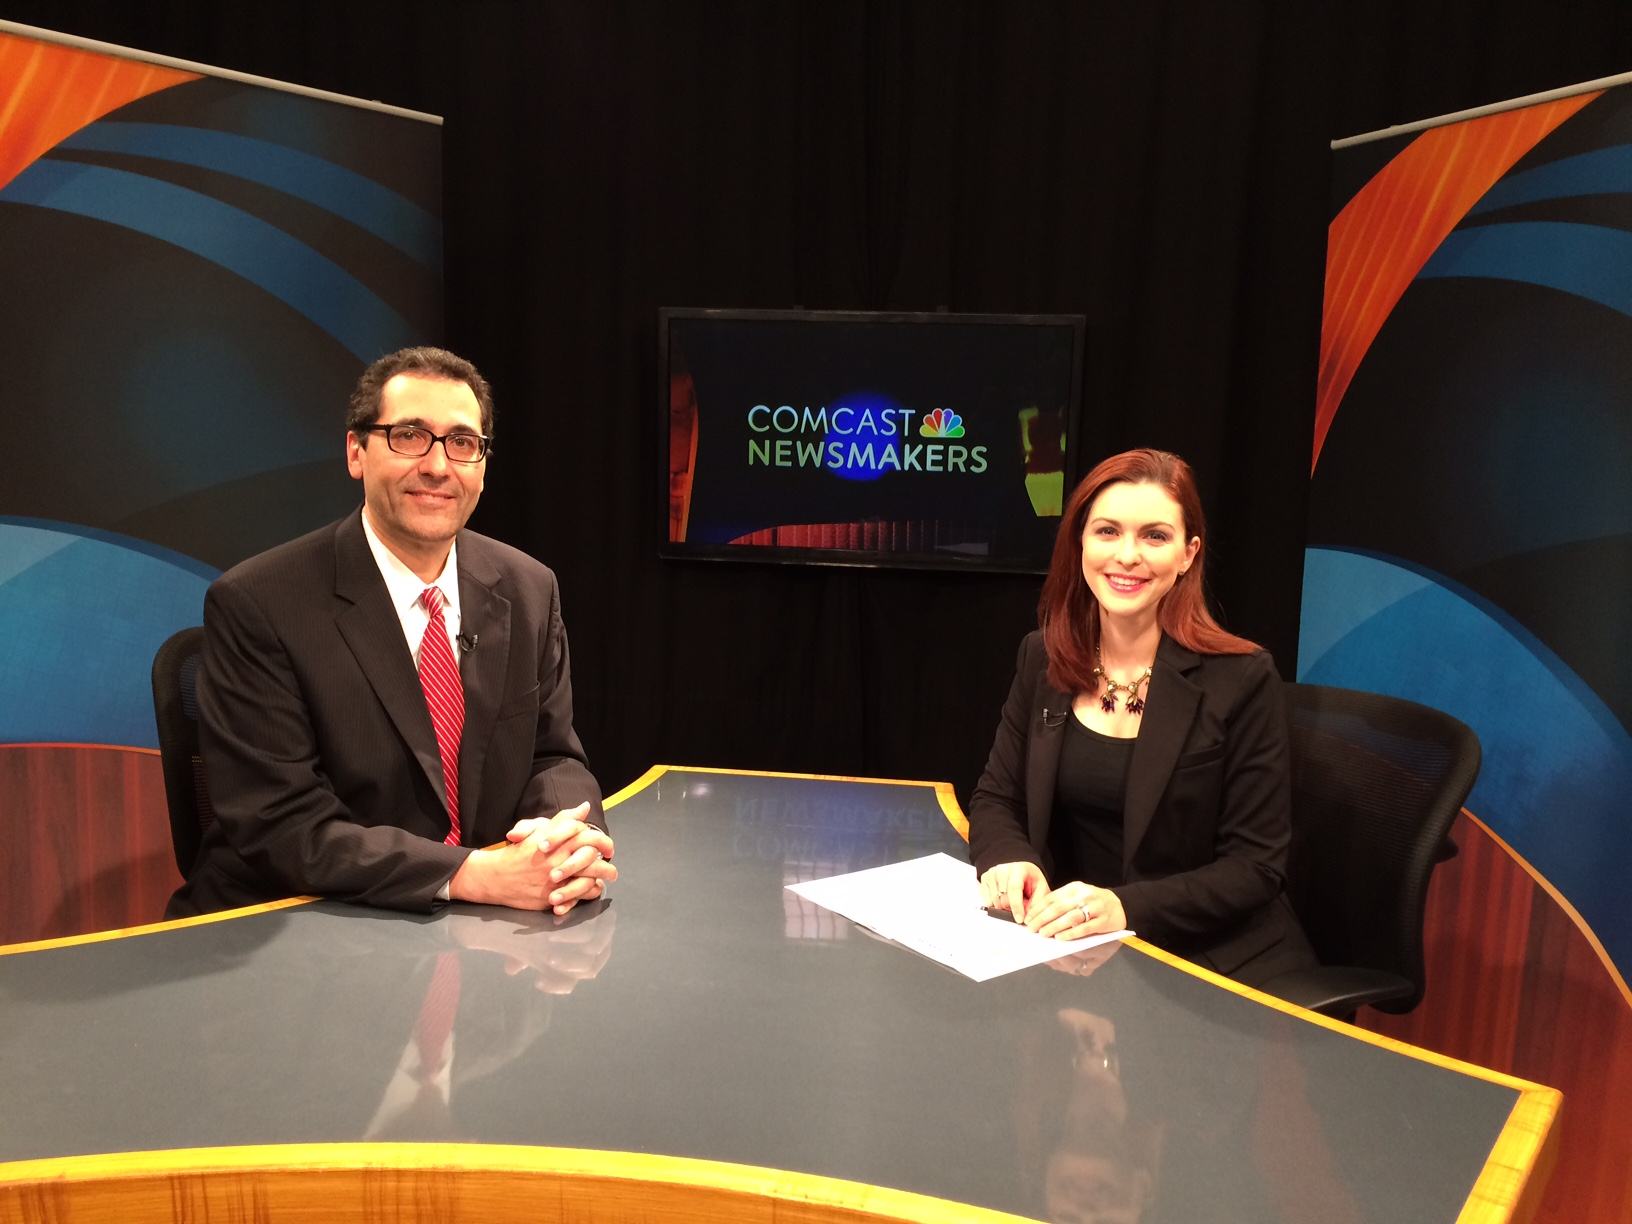 RCPA President & CEO Richard Edley on Comcast Newsmakers - RCPA